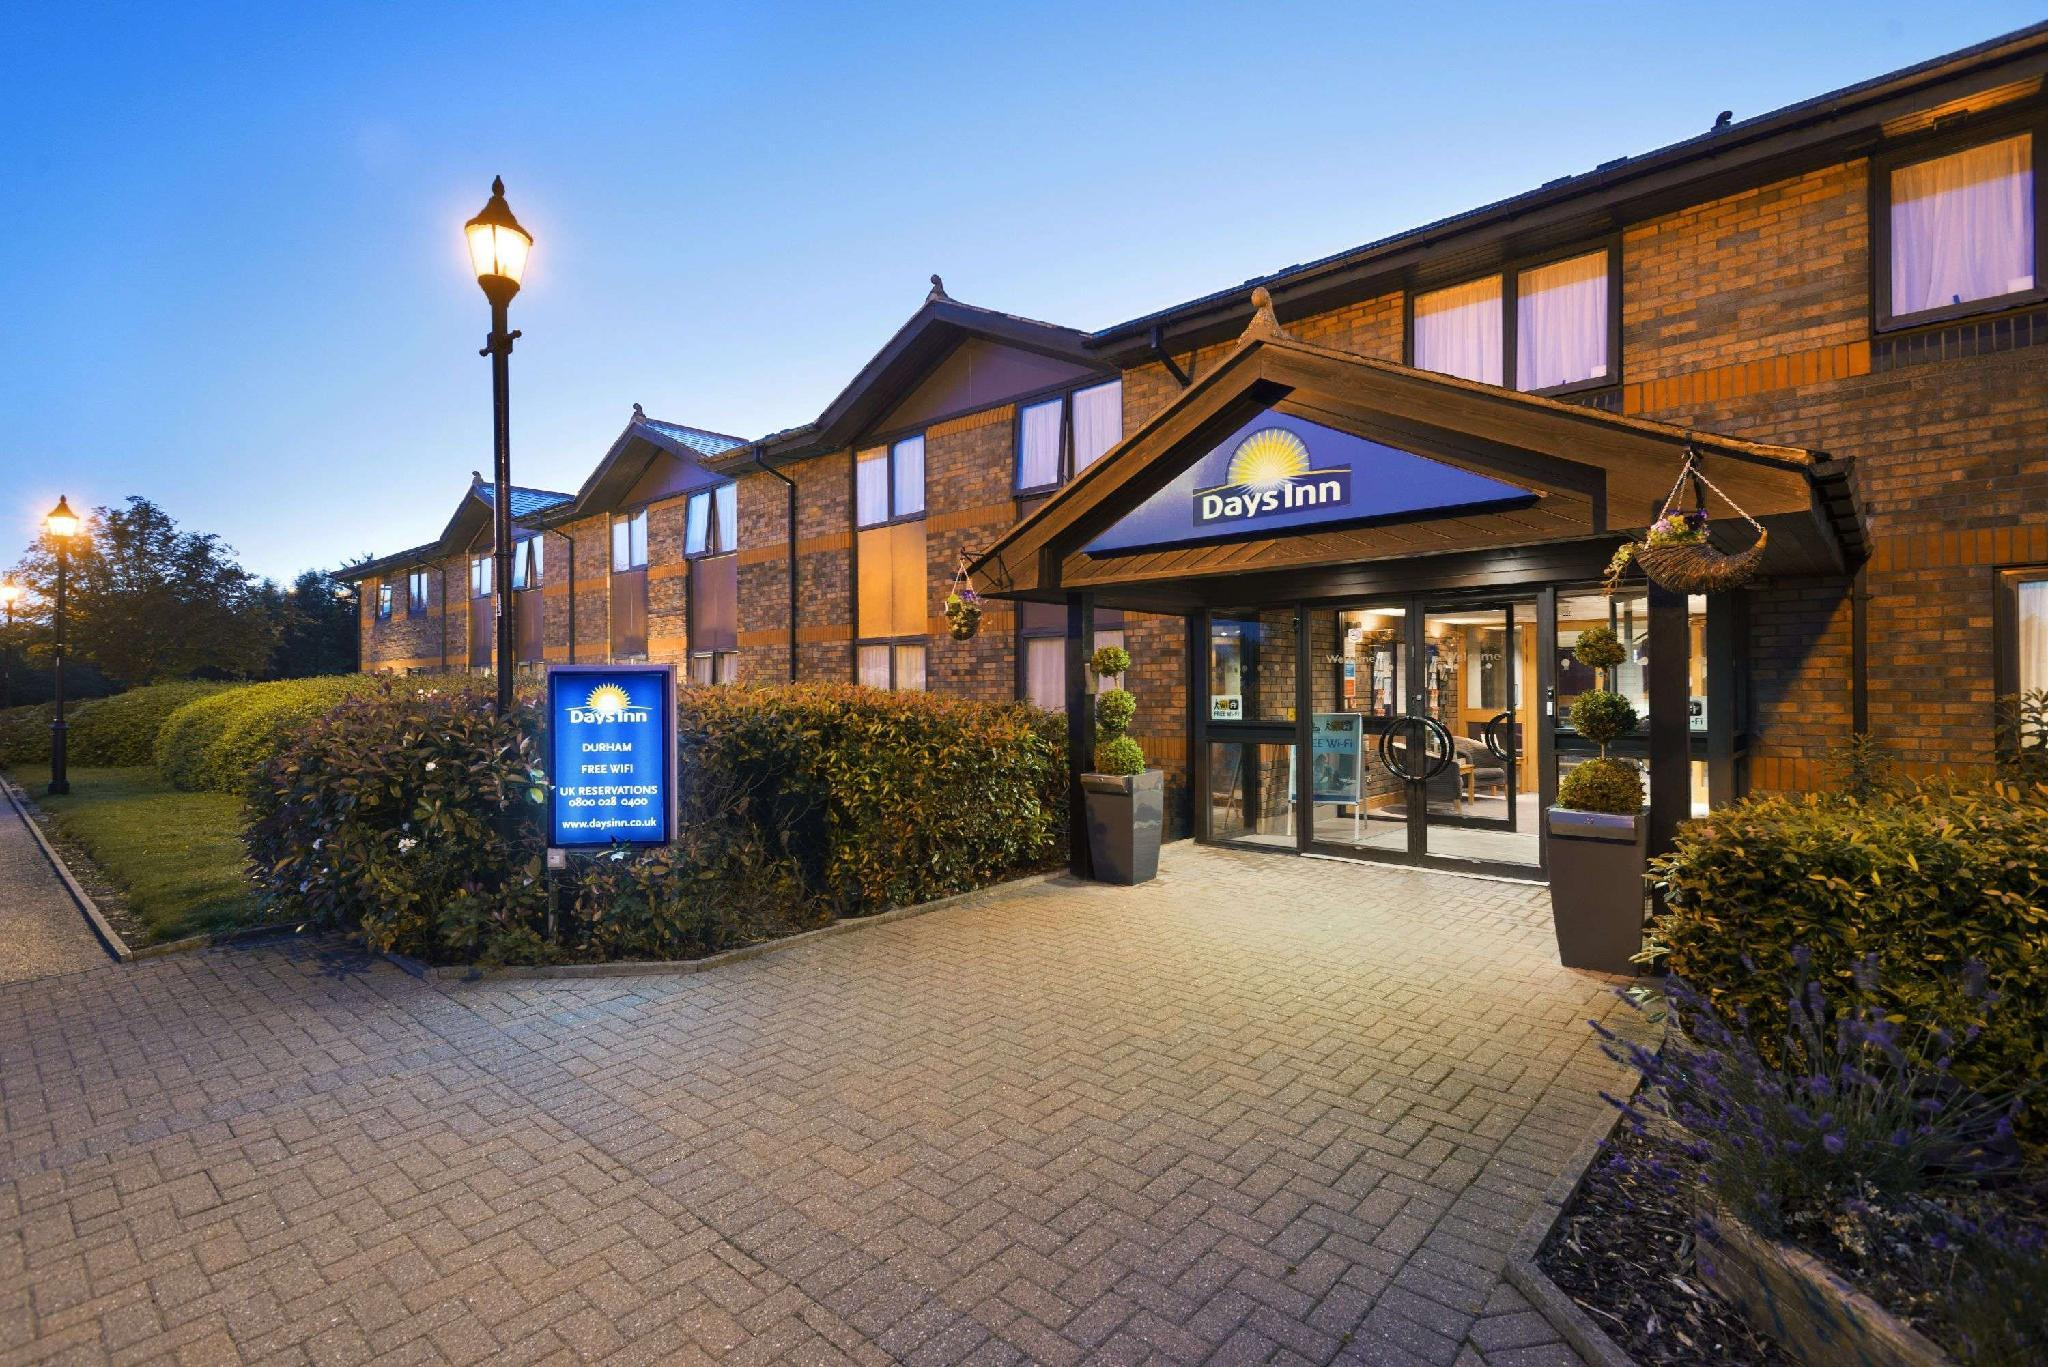 Hotels Reviews: Days Inn Durham – Room Prices, Pictures & Deals